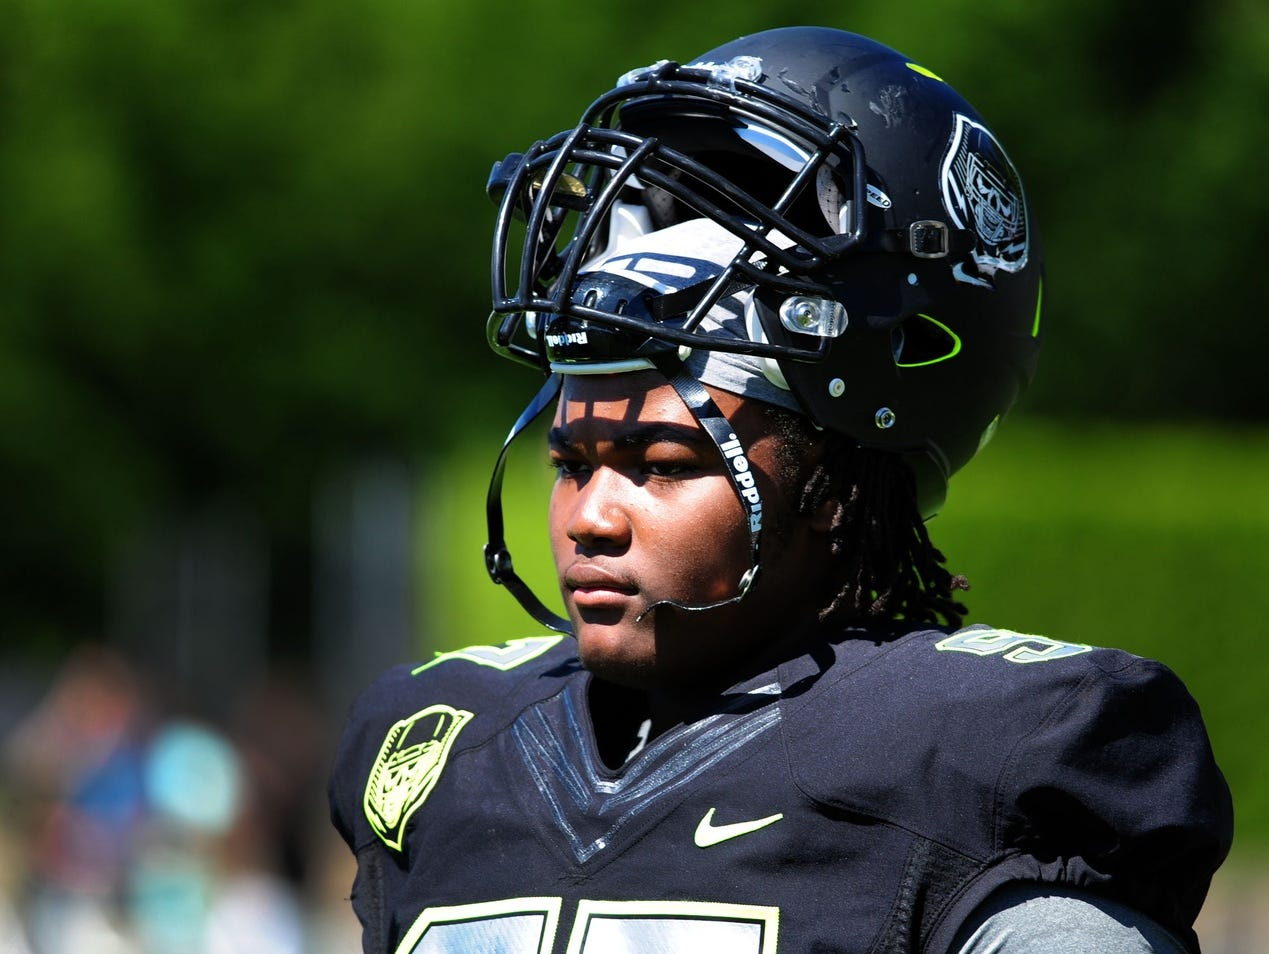 Defensive lineman Rashan Gary looks on from the sideline during The Opening at Nike World Headquarters in 2014.